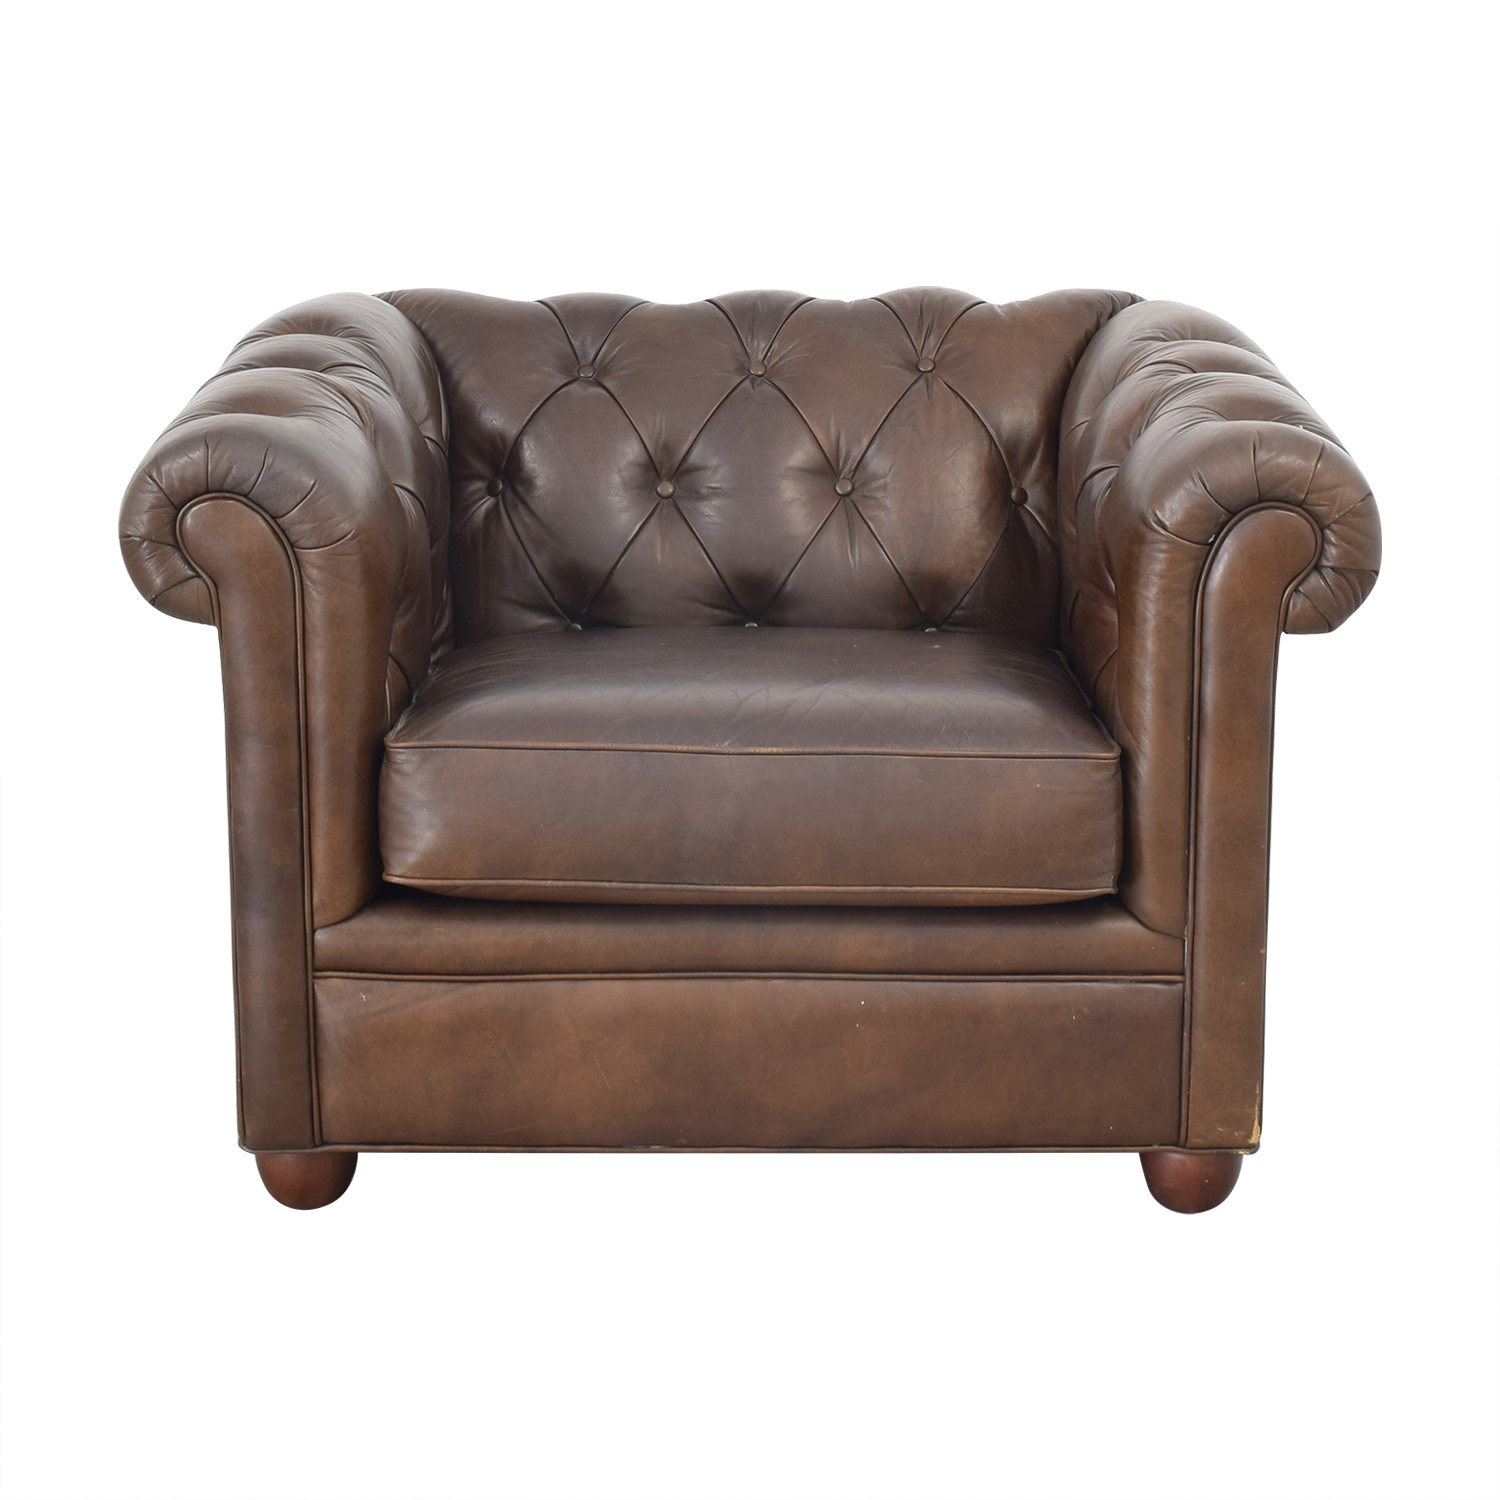 Pottery Barn Pottery Barn Chesterfield Armchair price